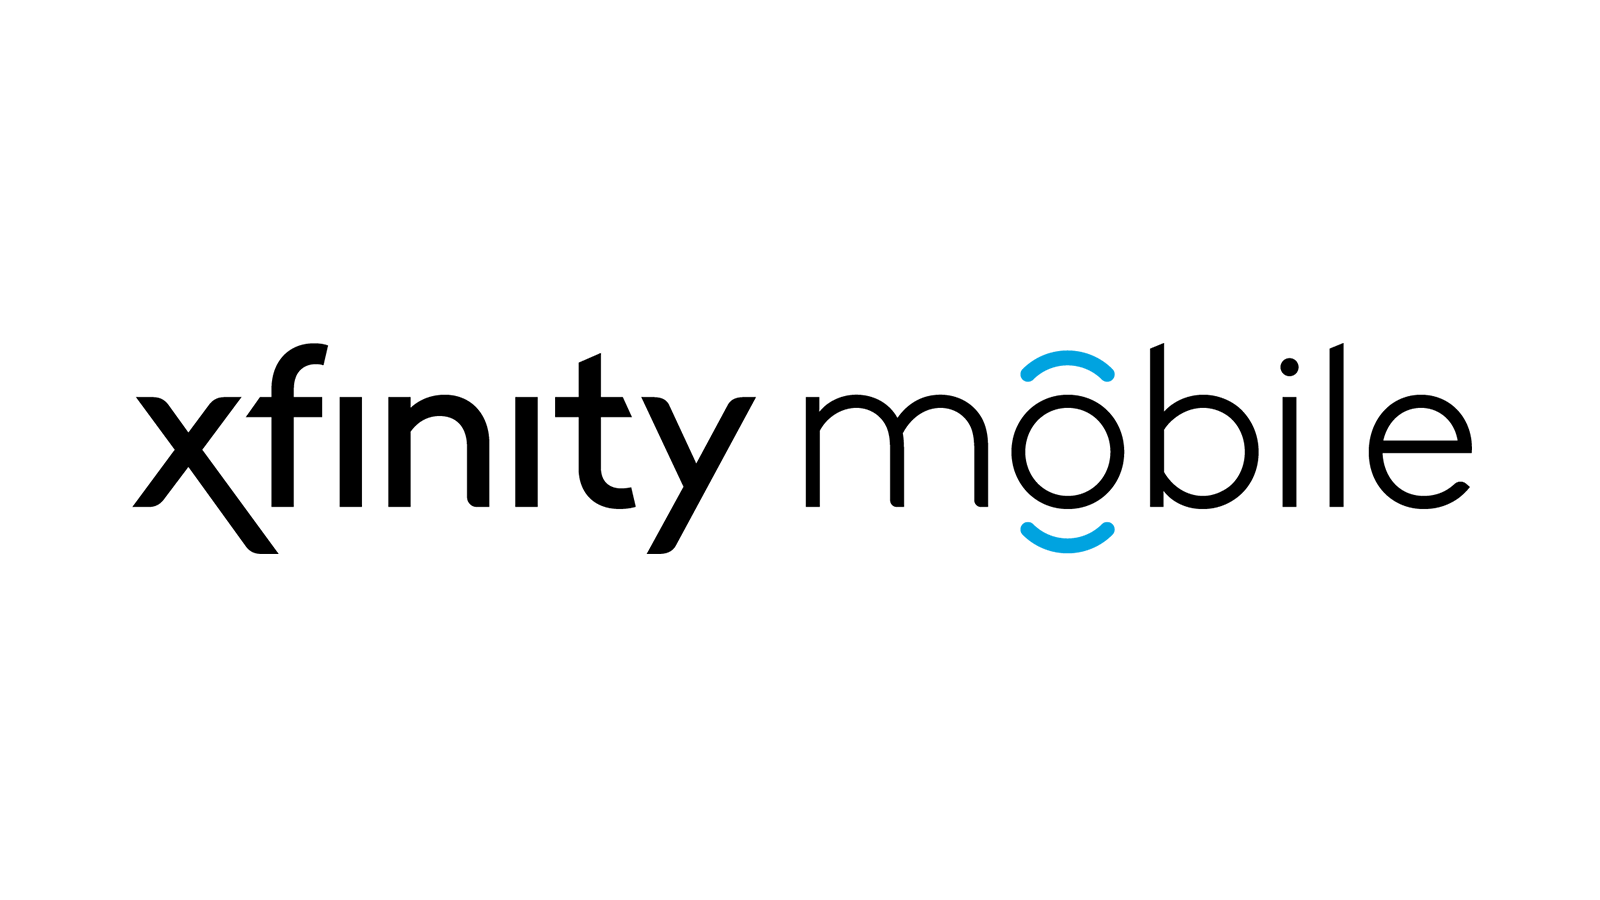 xfinity-mobile.png